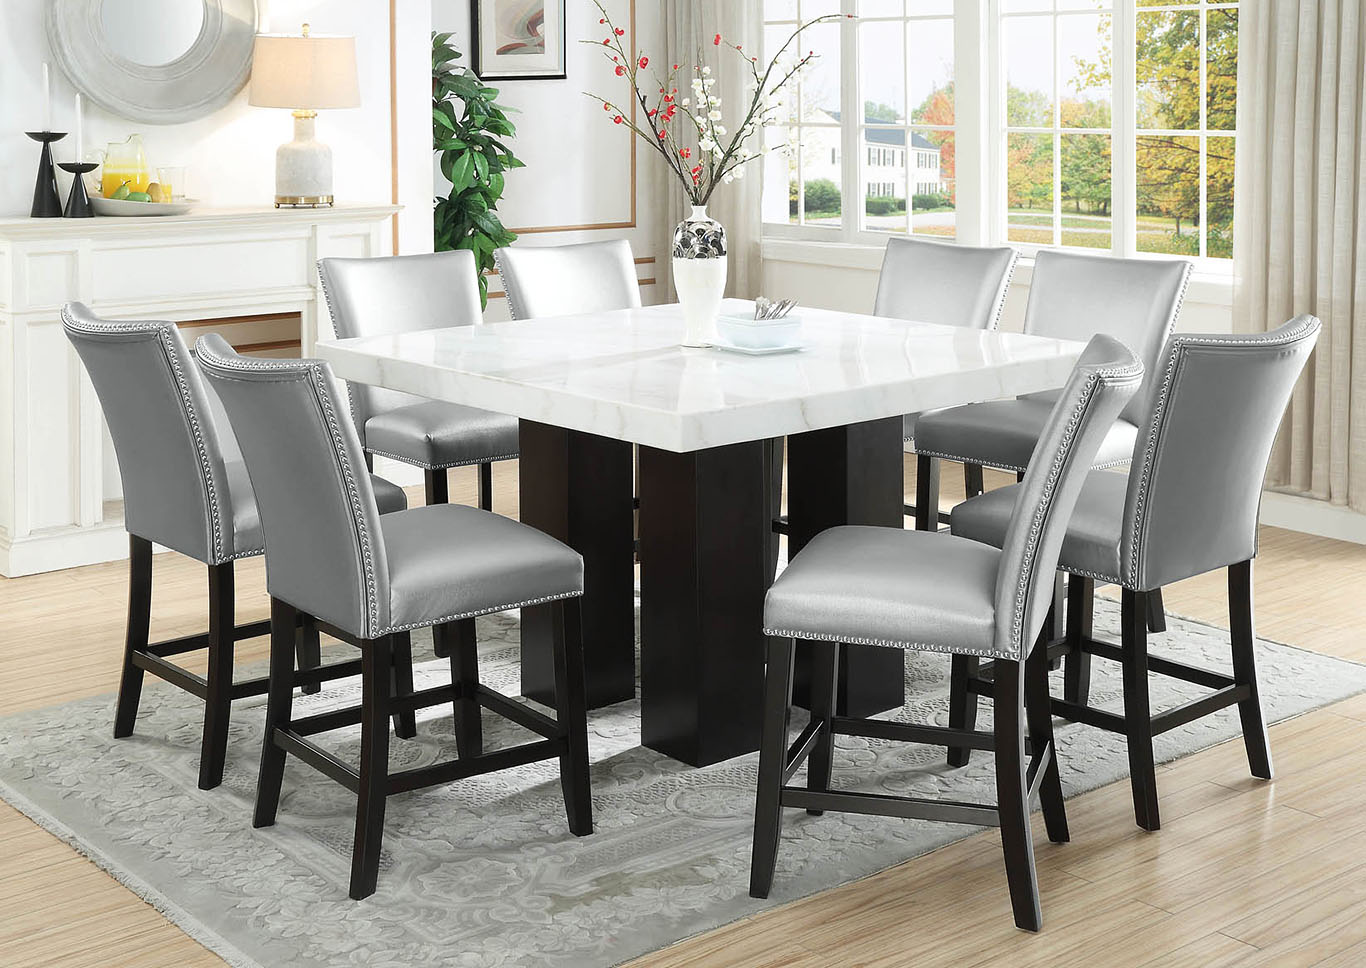 Camila Brown Square Counter Marble Top Dining Set W 8 Chairs Silver Pu Ivan Smith Furniture